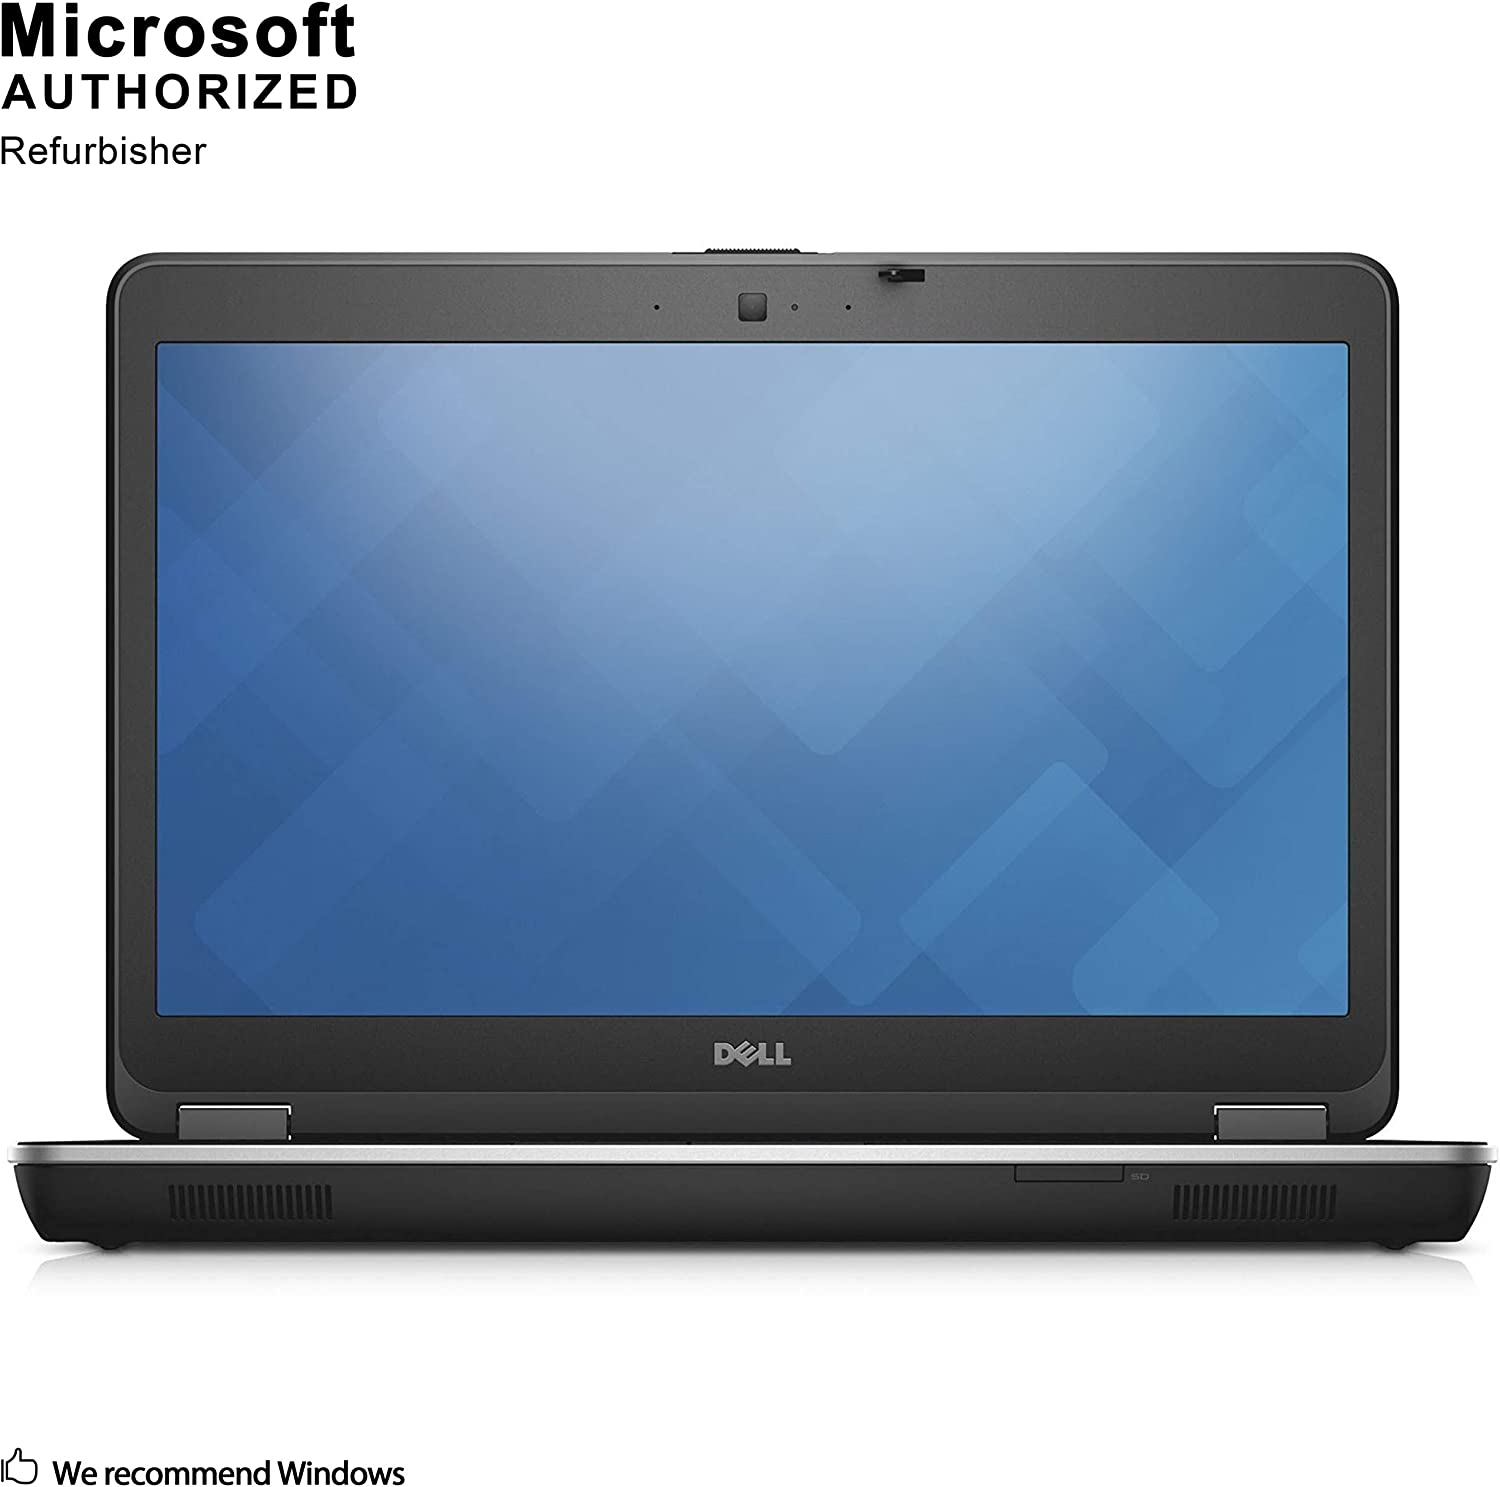 Dell Latitude E6440 14 Inch Business Laptop, Intel Core i5-4200M up to 3.1GHz, 16G DDR3, 1T SSD, DVDRW, VGA, HDMI, Win 10 Pro 64 Bit Multi-Language Support English/French/Spanish(Renewed)